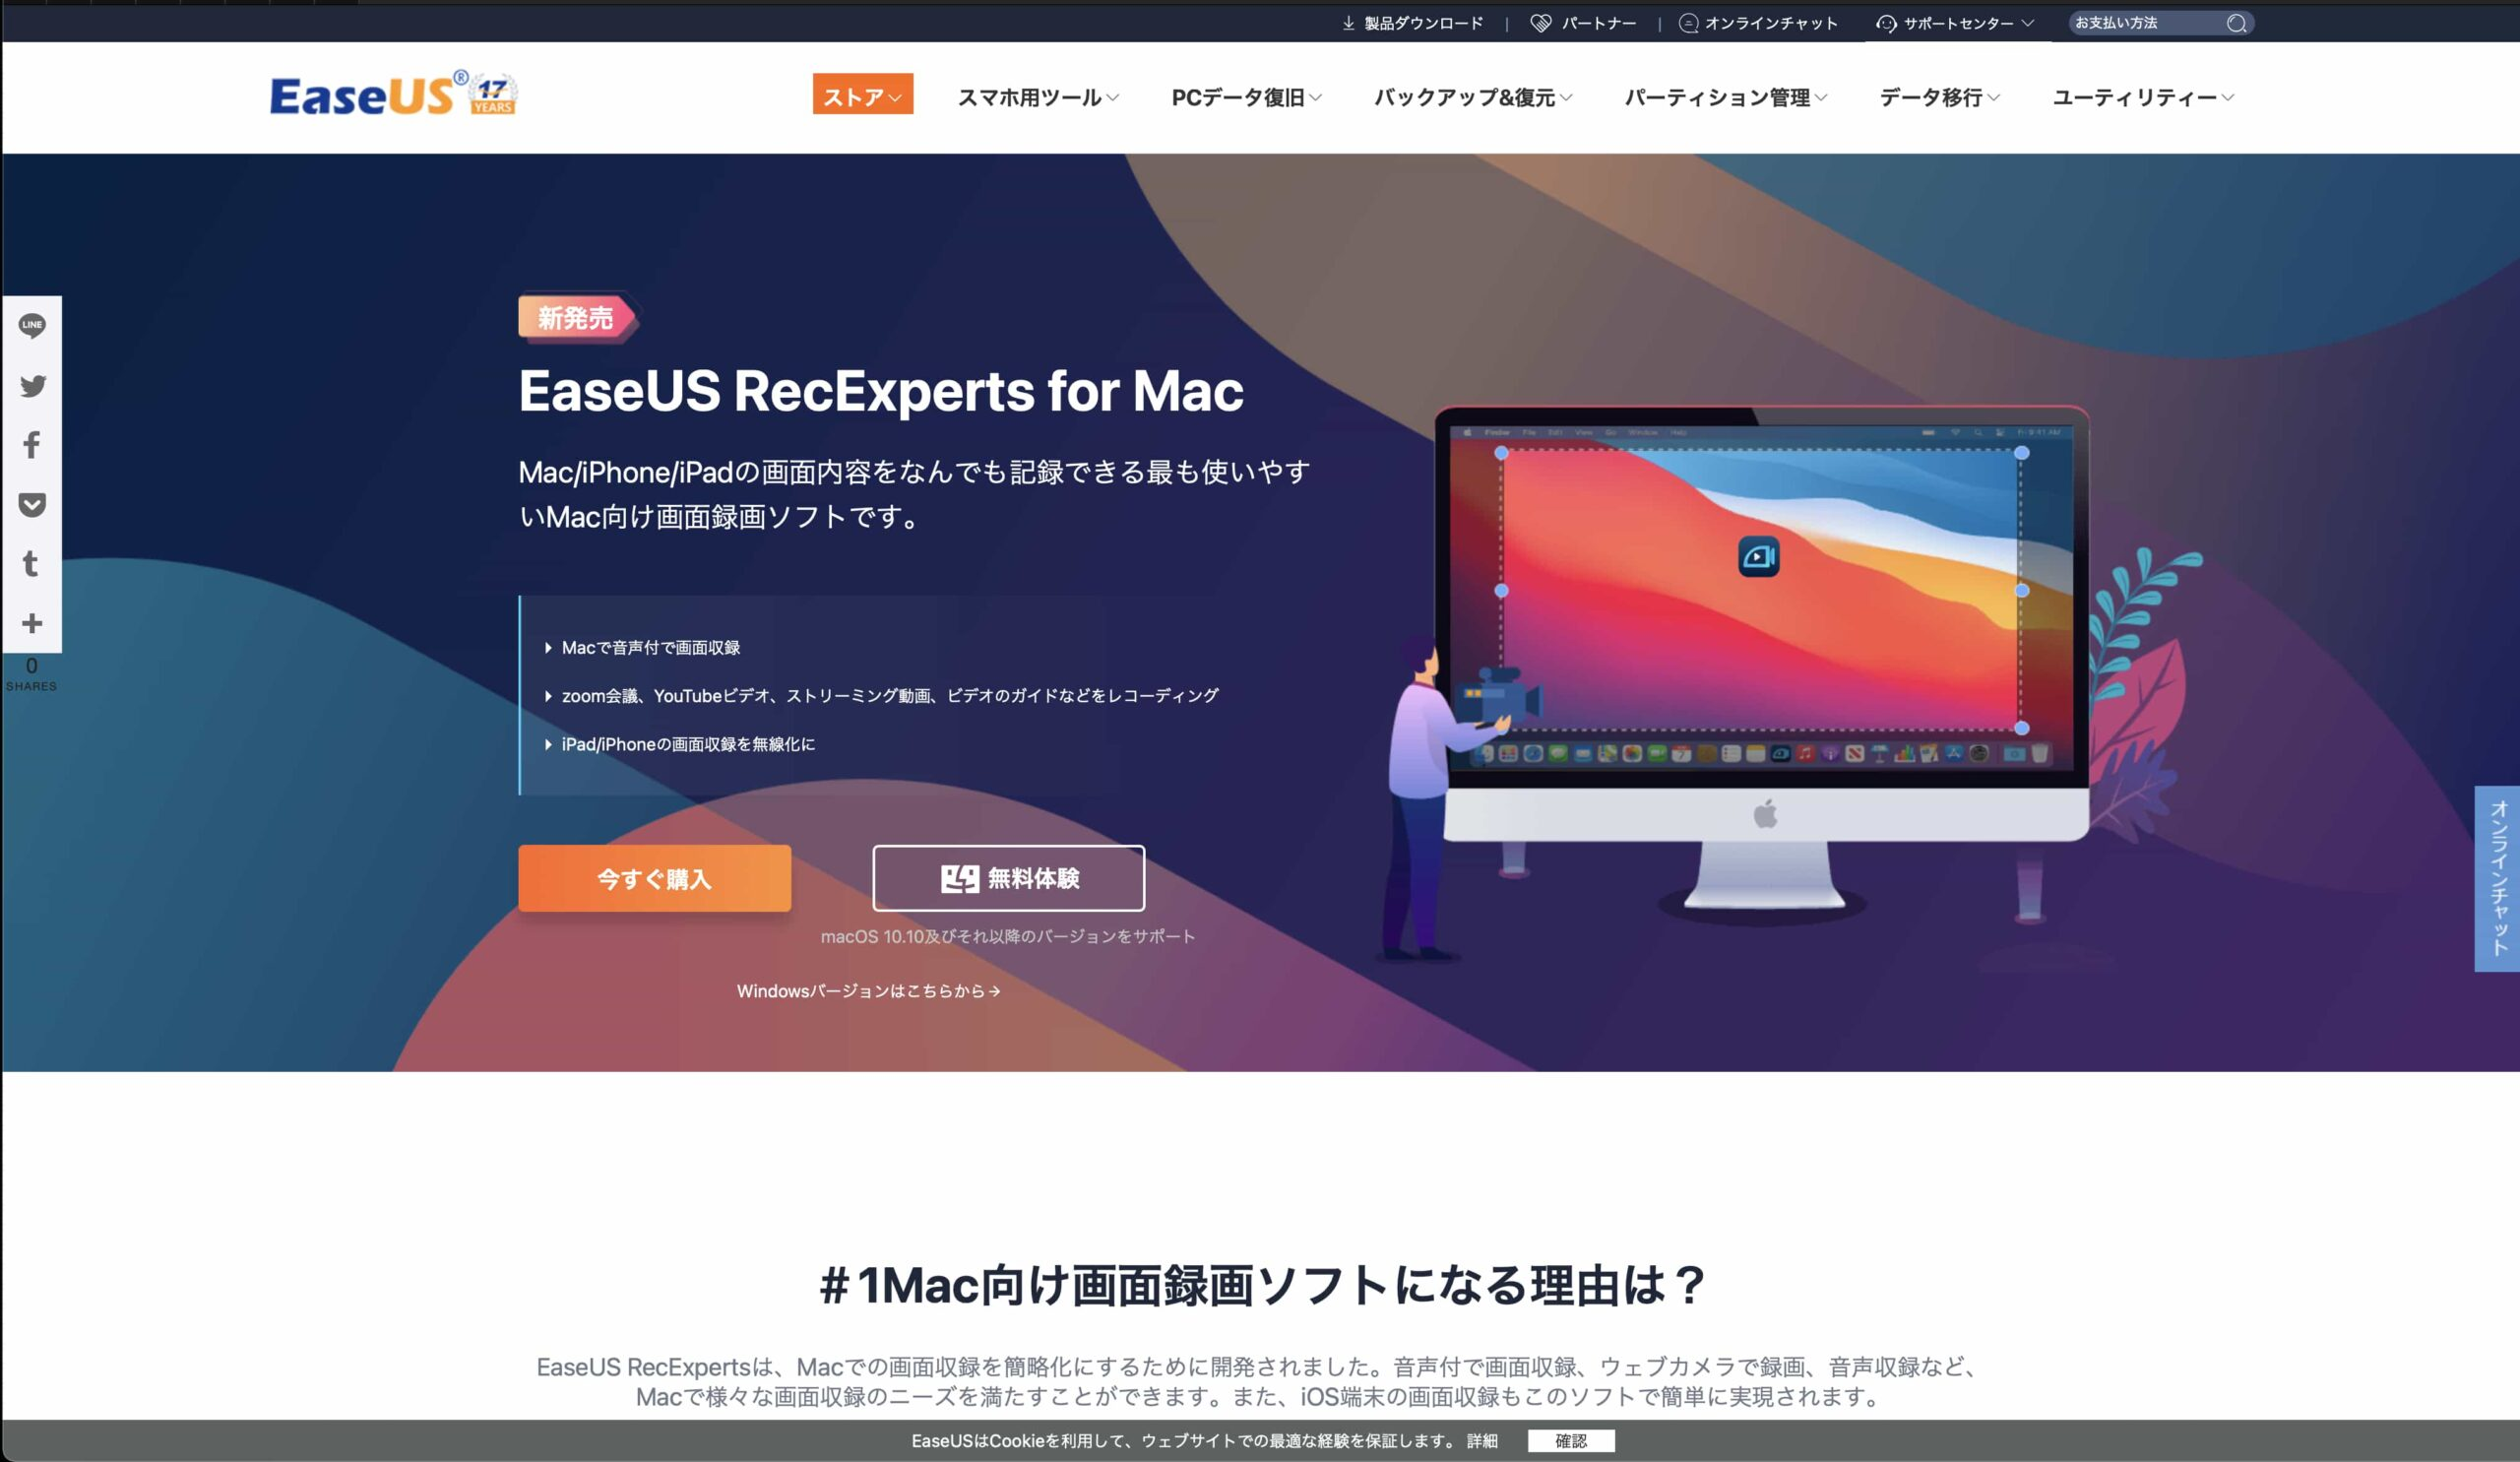 「EaseUS RecExperts for Mac」はどんなソフトなの?